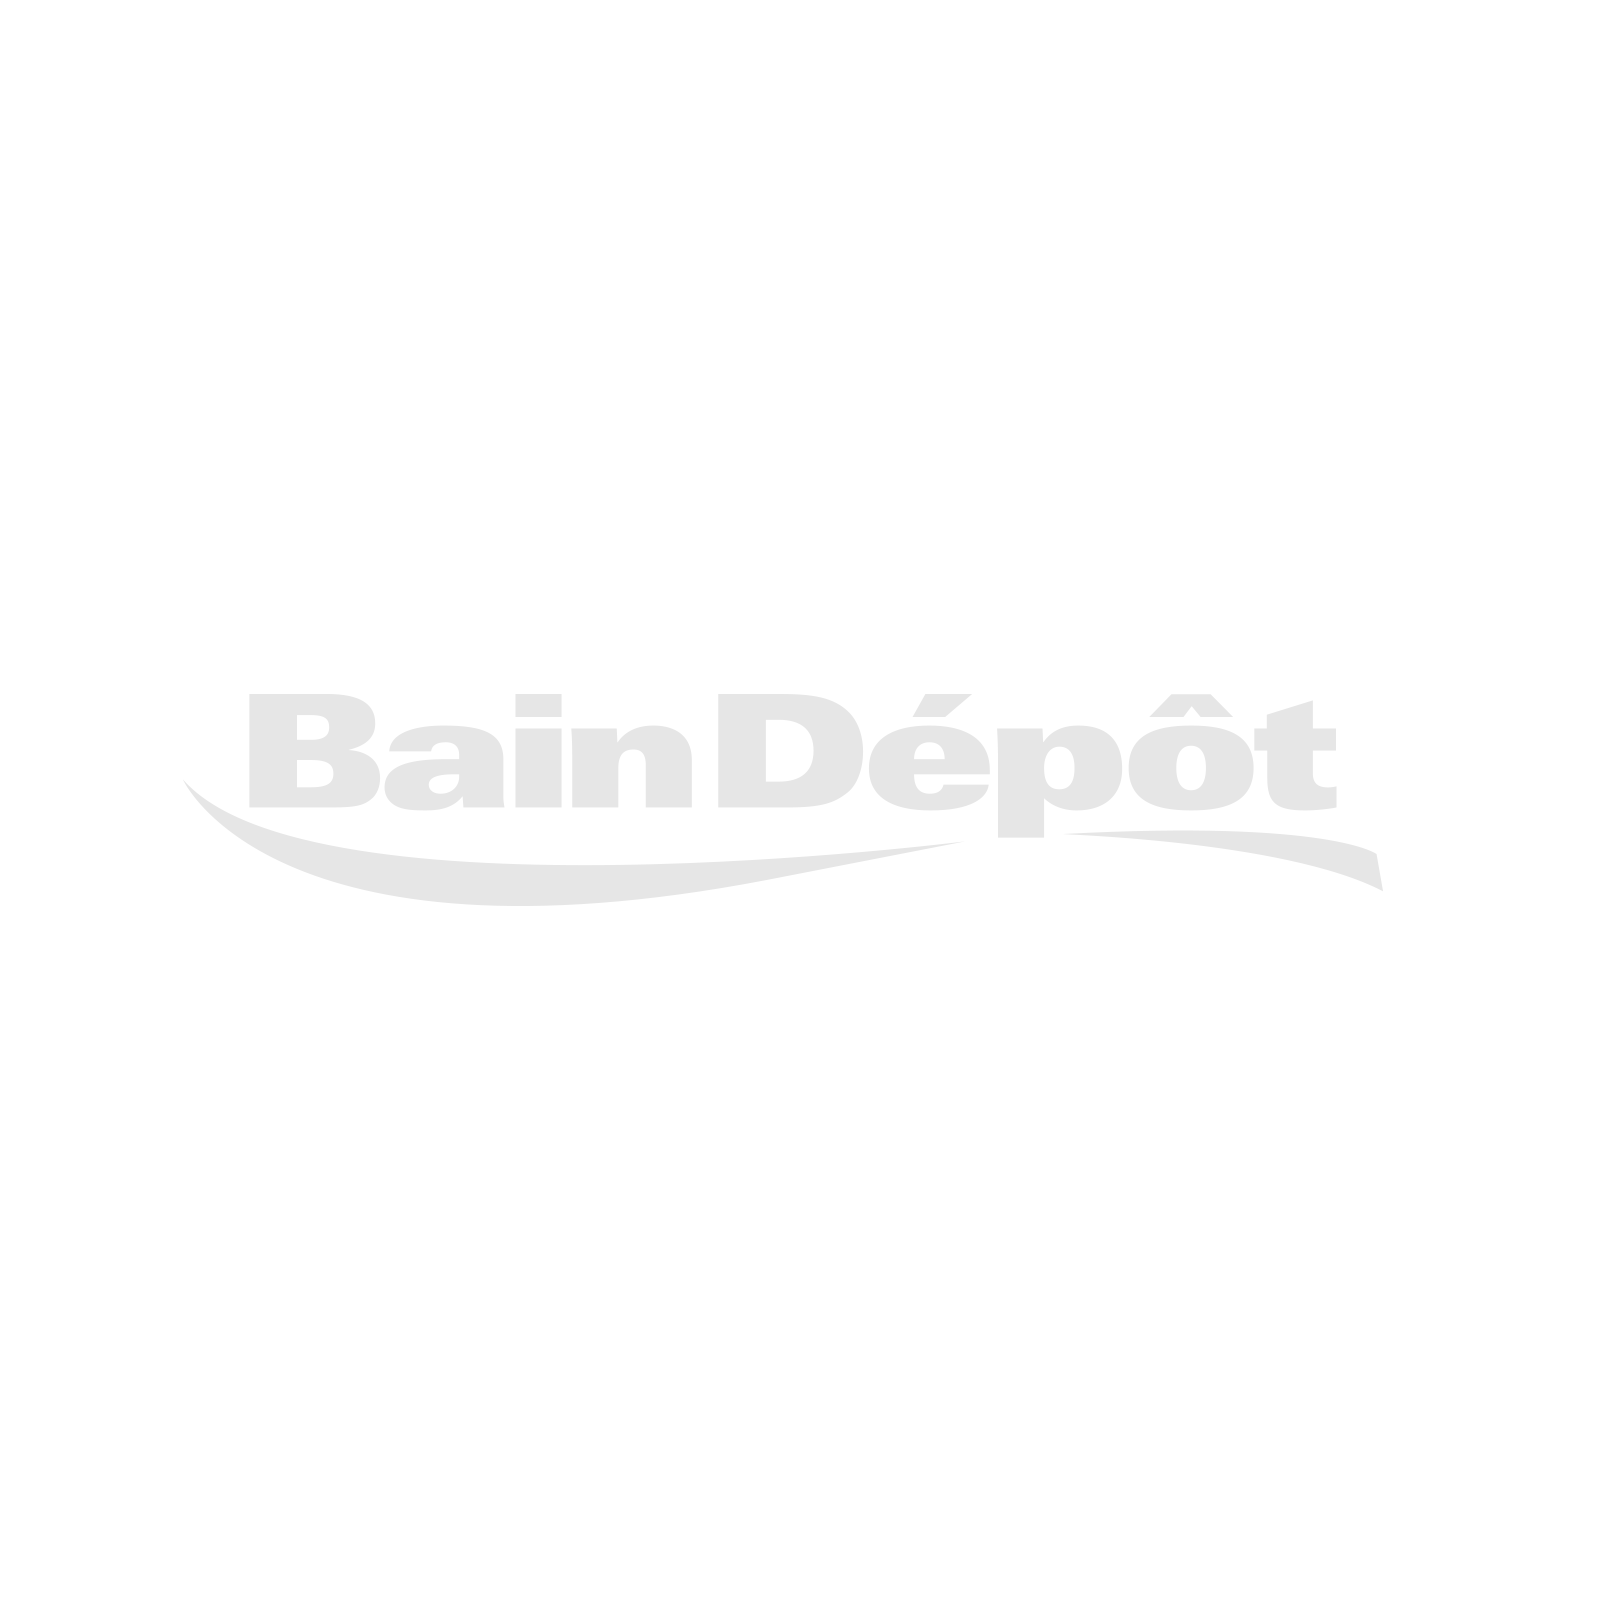 Hot cartridge for 4-inch faucet